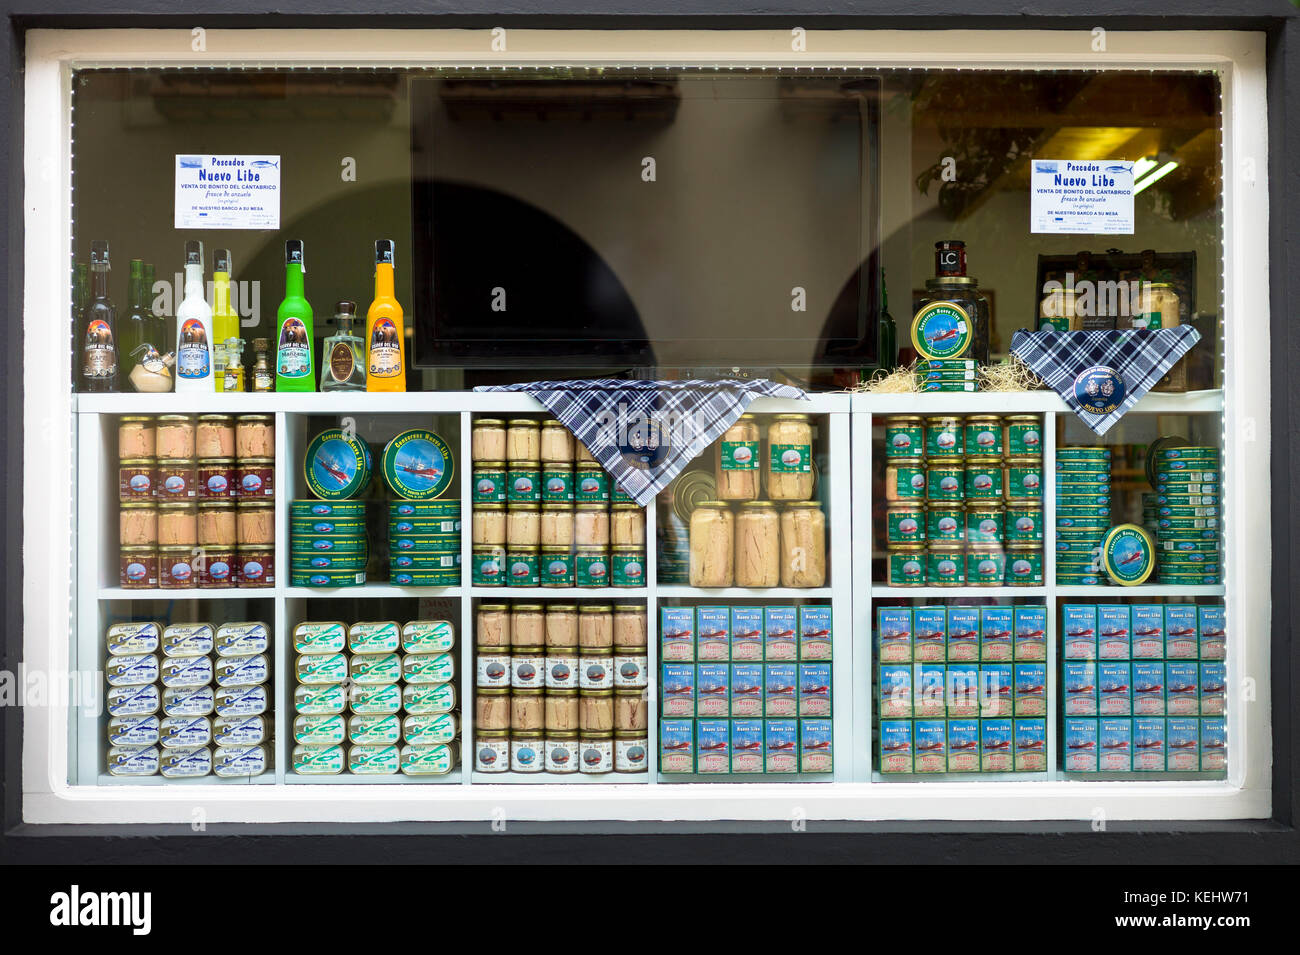 Canned tuna fish and anchovy, Pescados Nuevo Libe, in shop in Calle Santander in Santona, Cantabria, Northern Spain - Stock Image